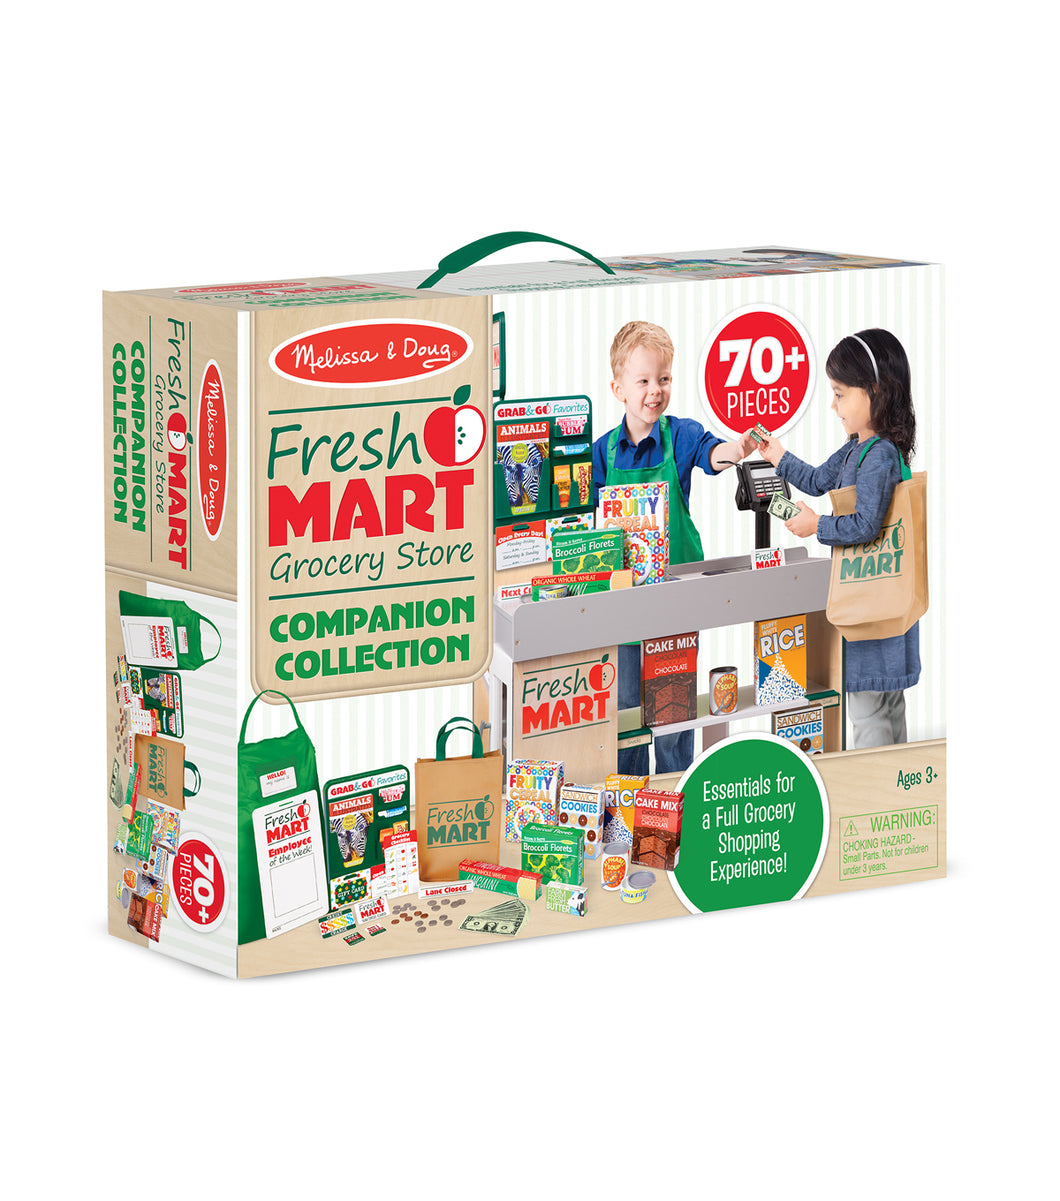 Melissa and Doug - Fresh Mart Grocery Store Companion Collection